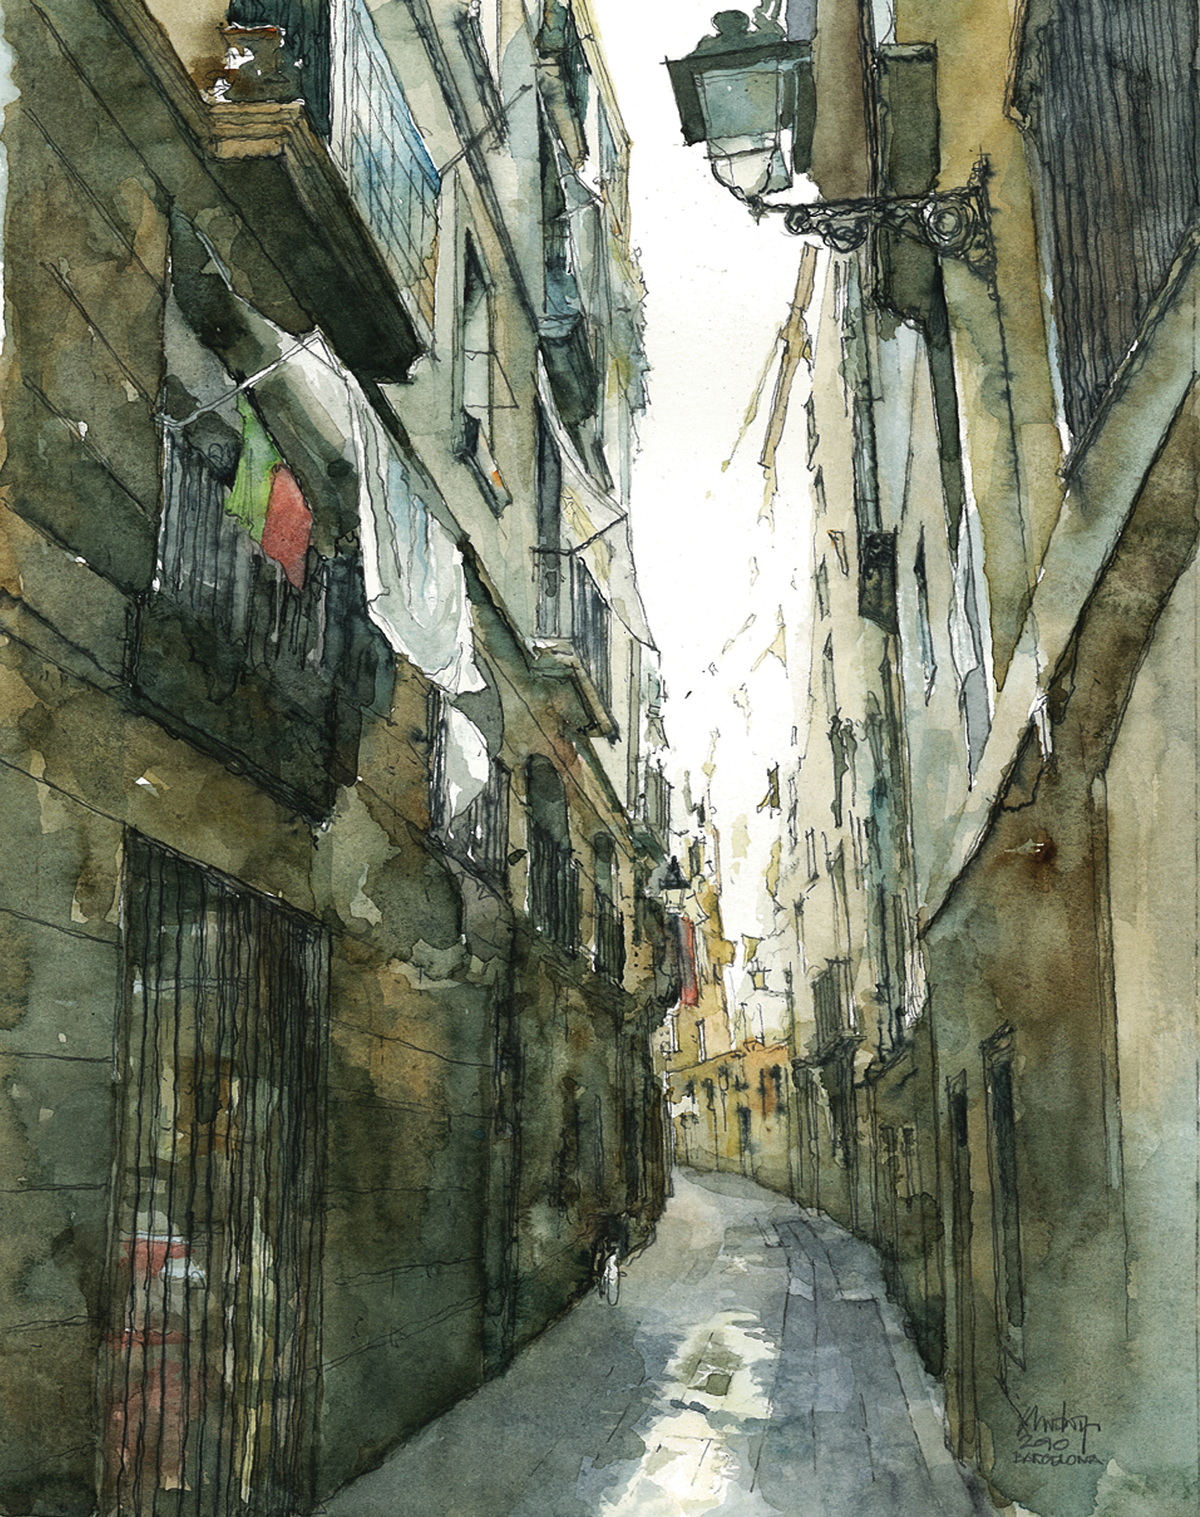 Observational painting of a Barcelona street by Chris Loyn; pencil, pen and watercolour on watercolour paper